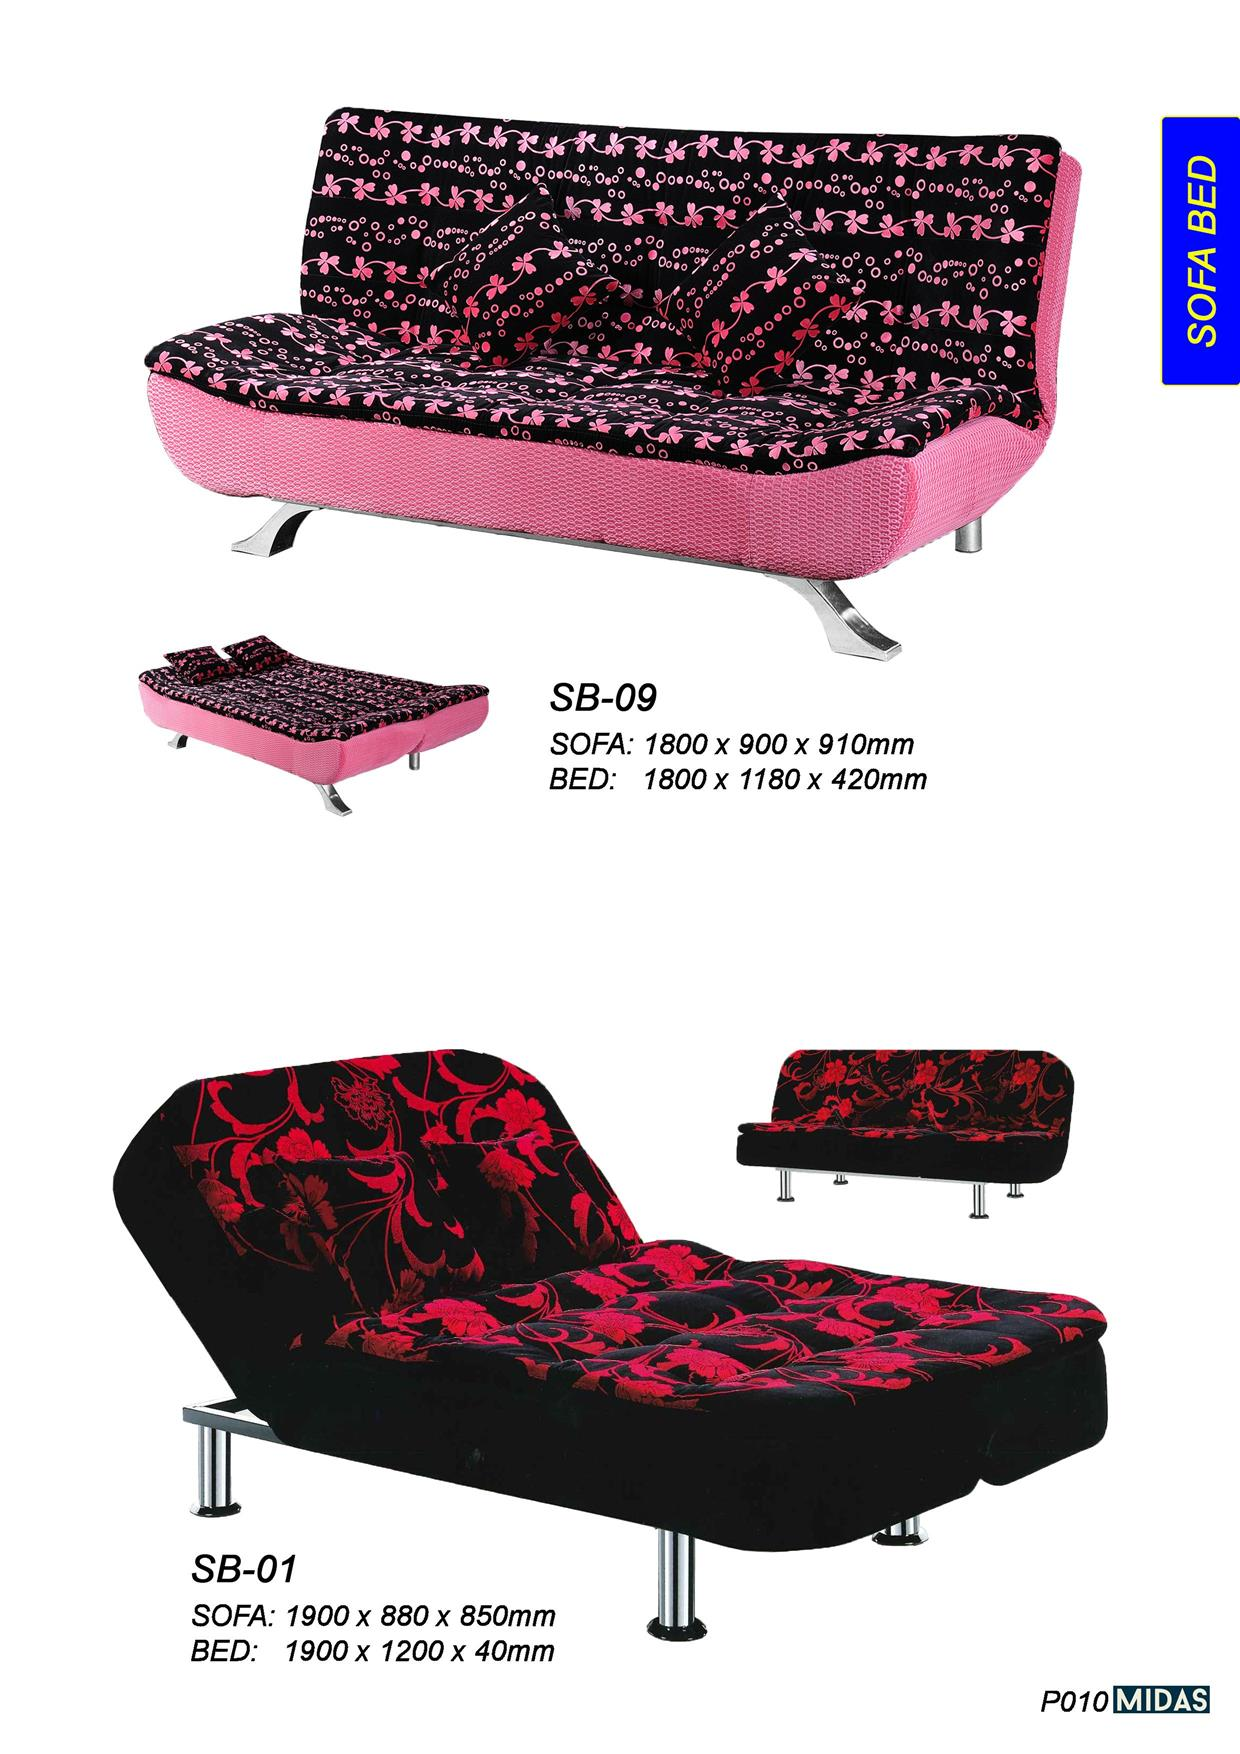 foldable sofa chair malaysia hammock stand bunnings sb 01 bed soft comfor end 1 25 2018 10 15 am